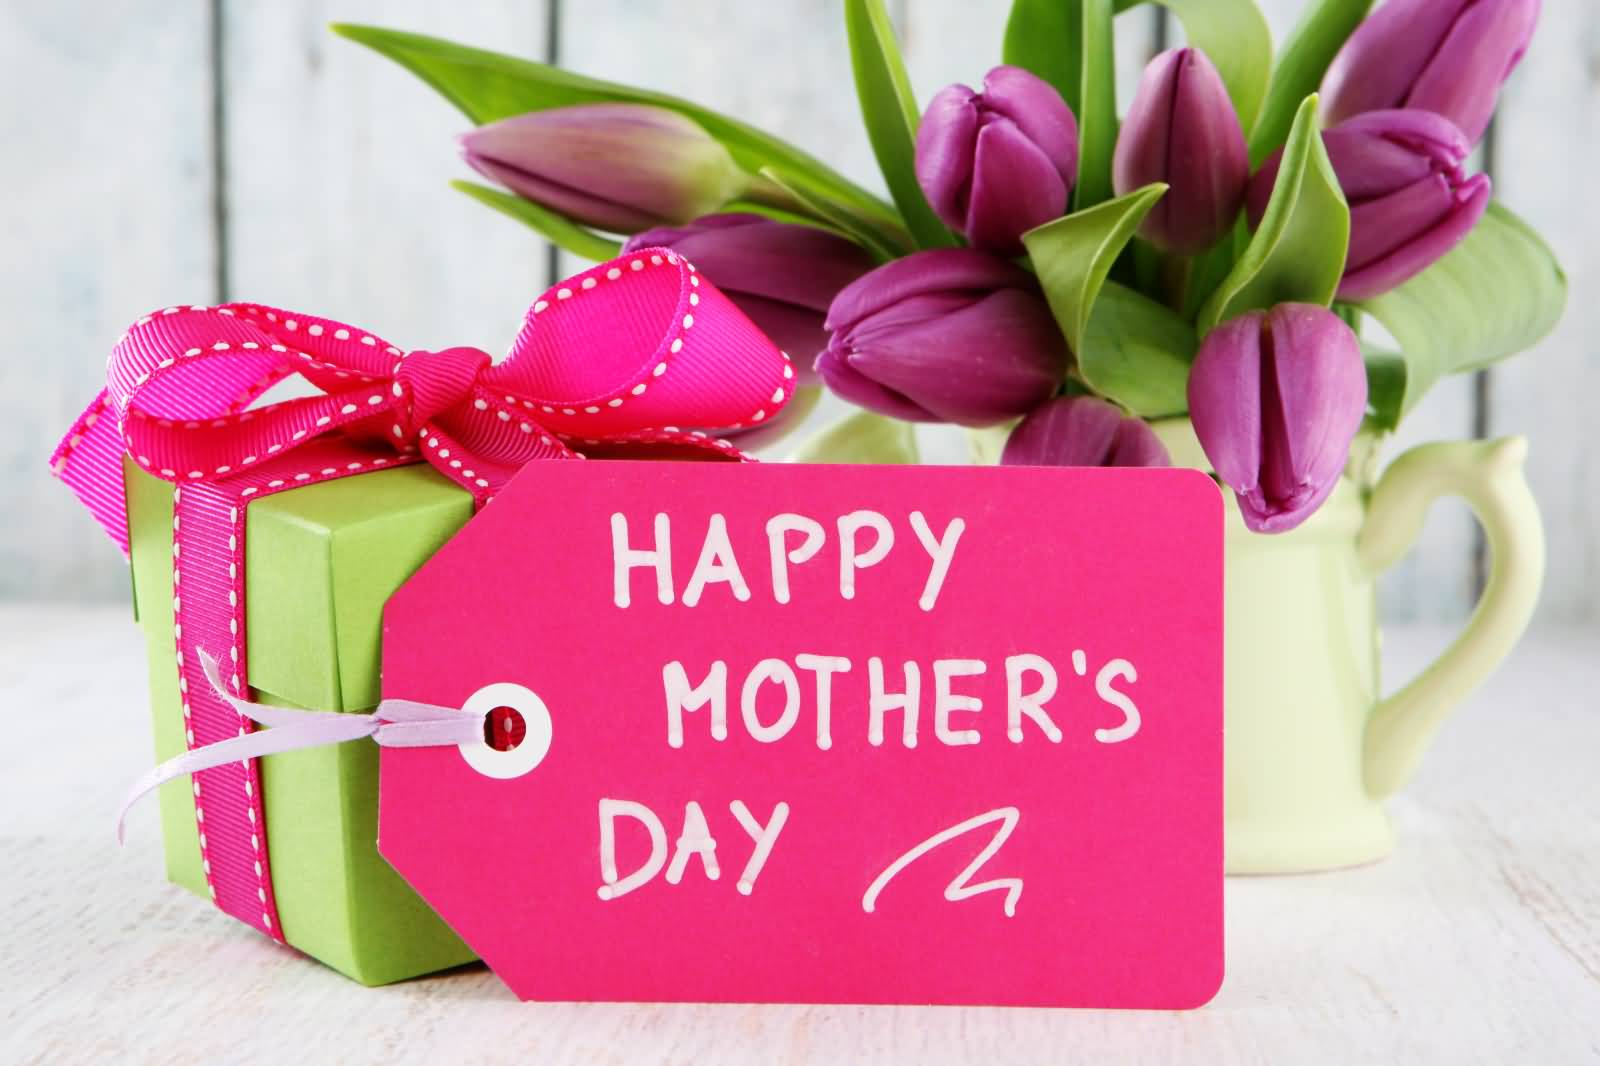 best mother's day  greeting pictures and photos, Natural flower